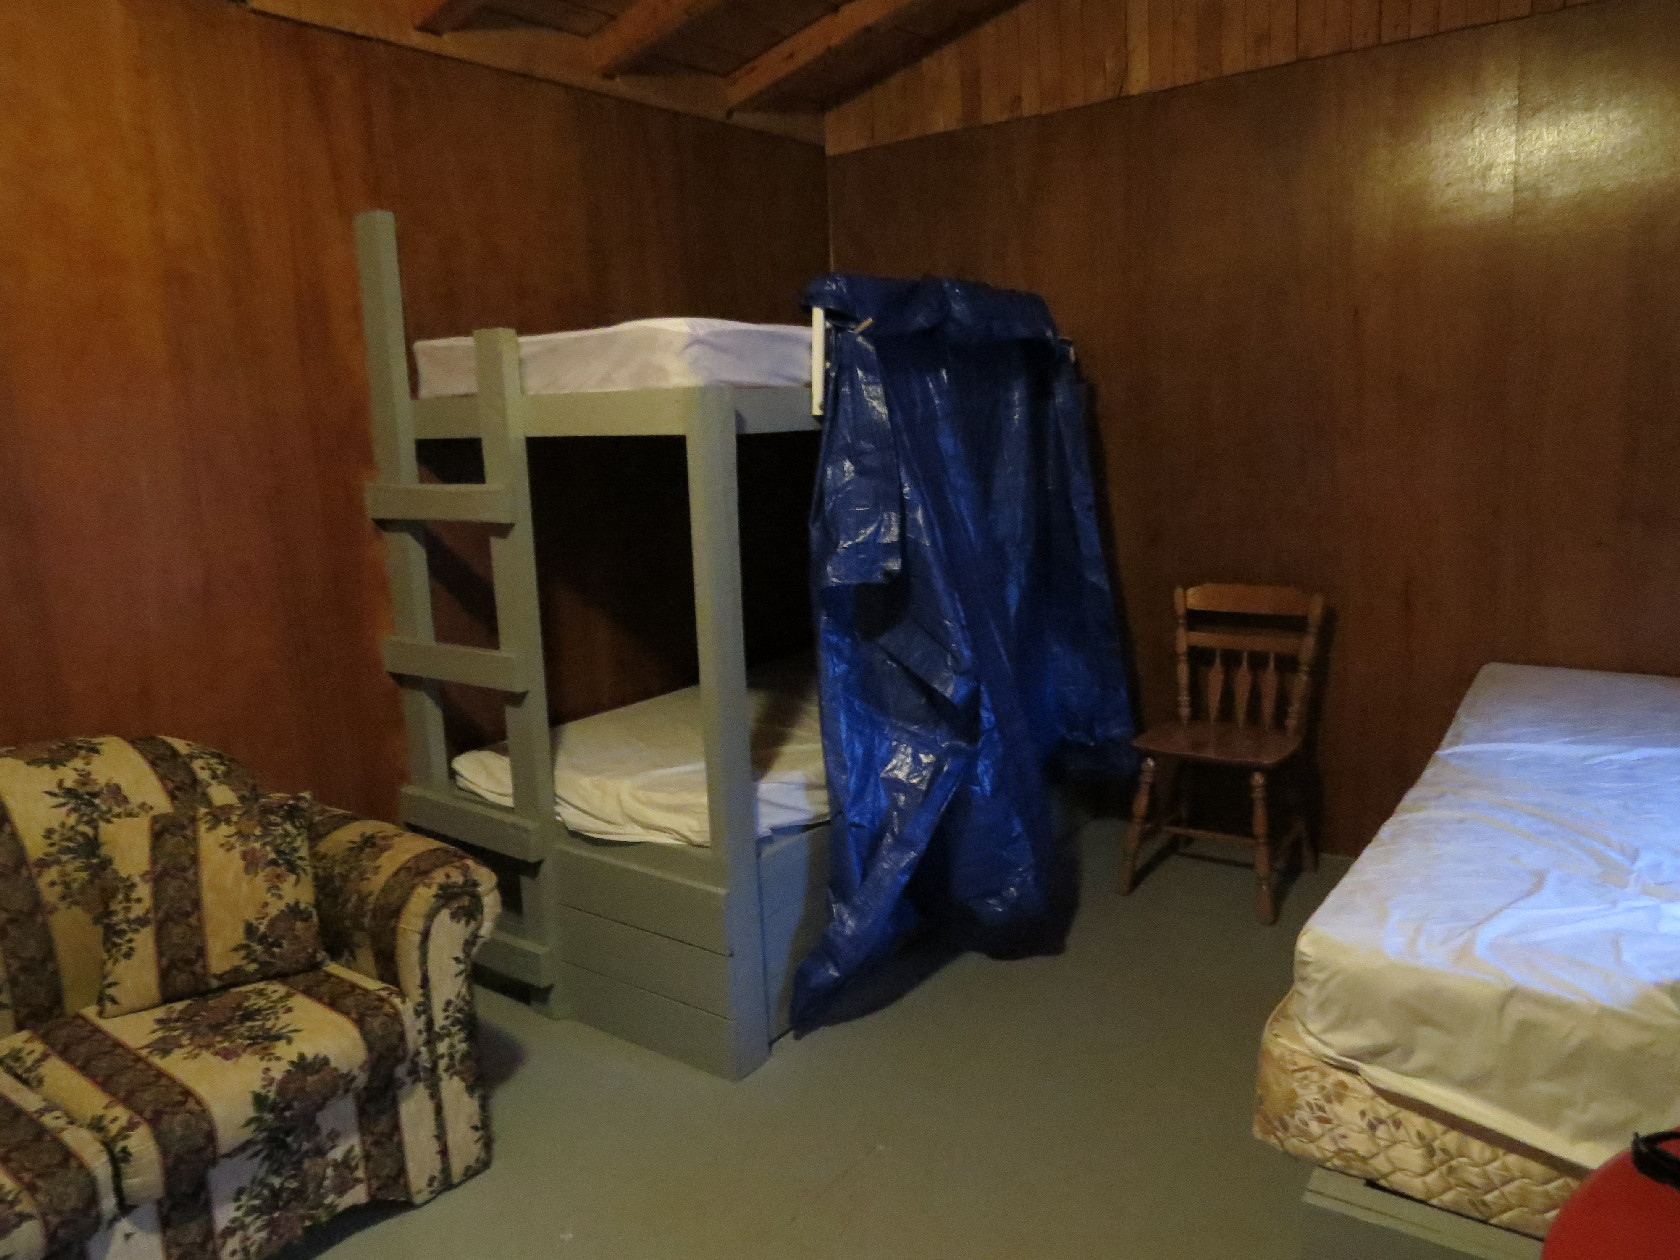 Dry cabin at WOW Campground, Truro - interior